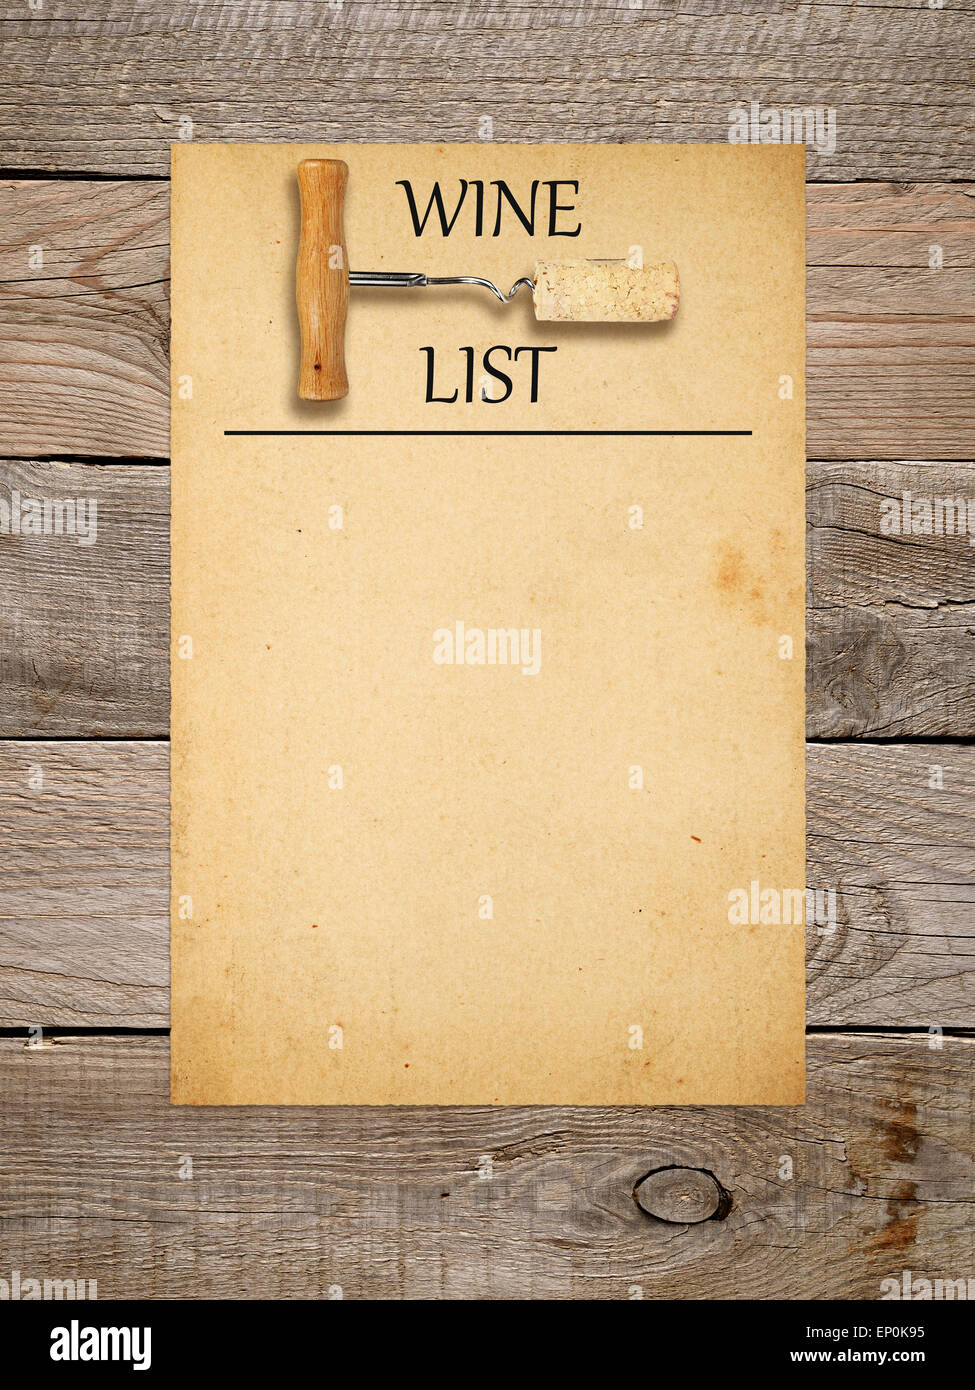 wine list design - corkscrew with cork and old paper on wooden stock